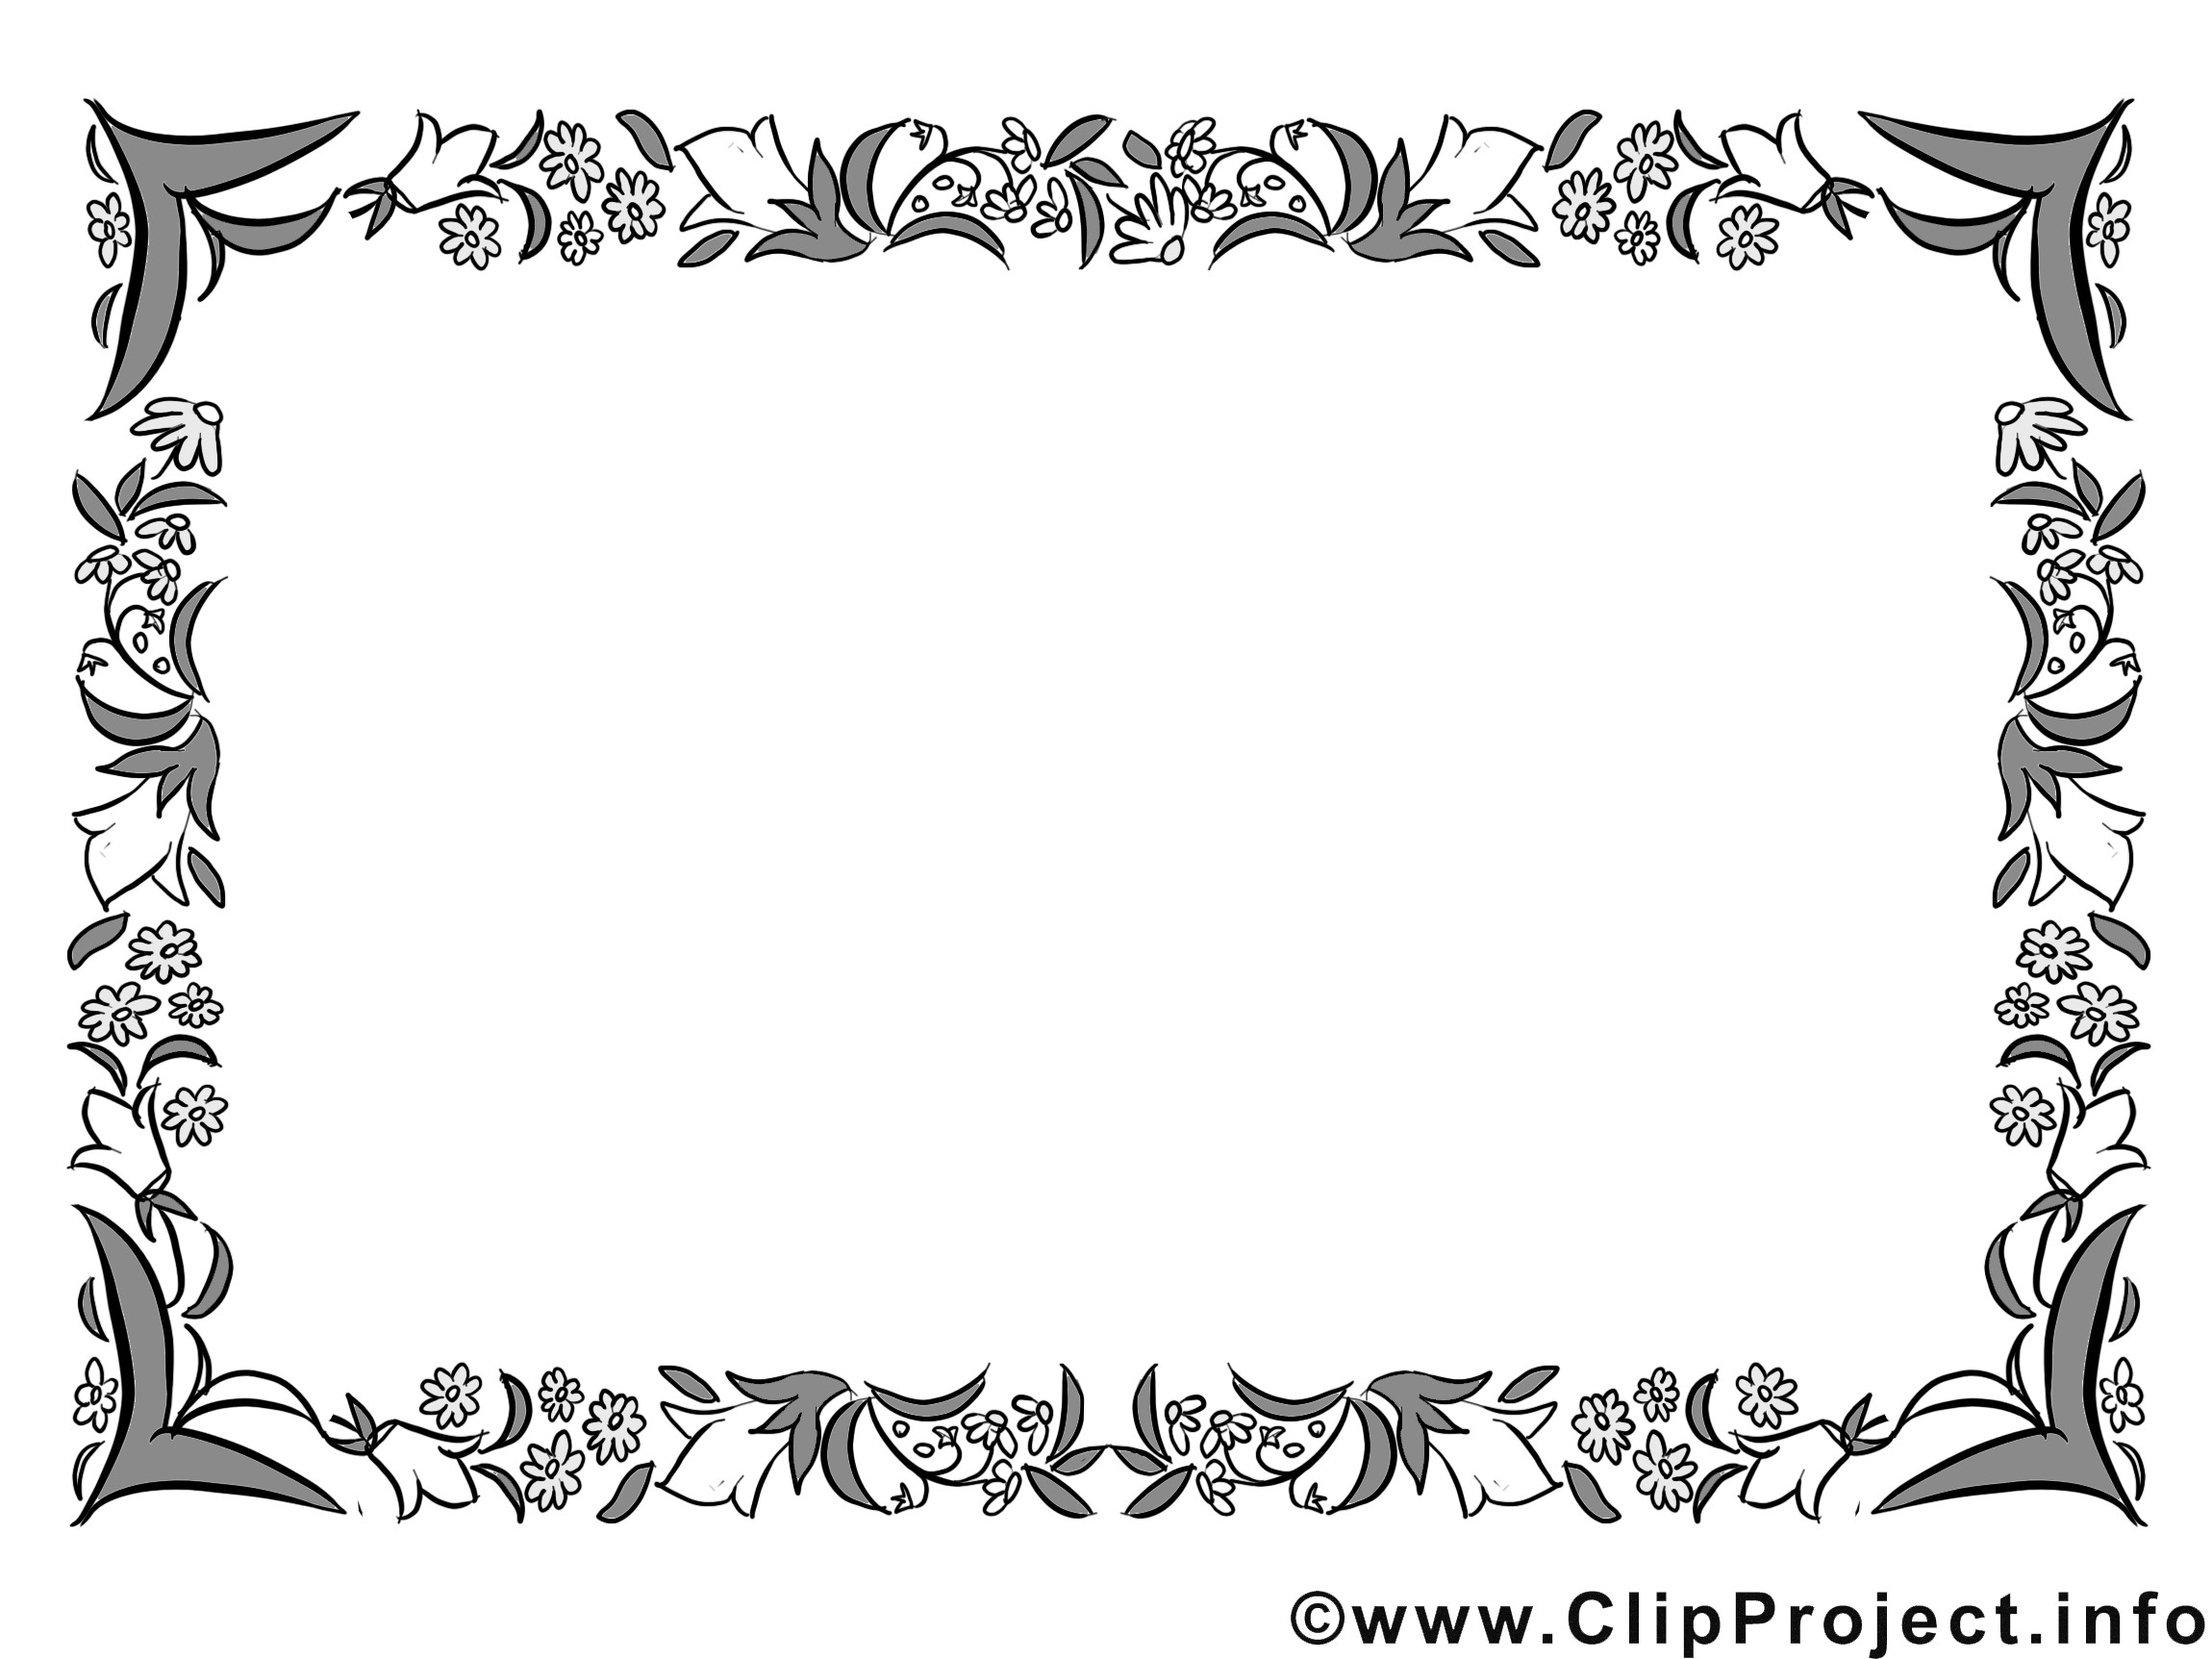 encadrement clipart cadre dessins gratuits cadres dessin picture image graphic clip art. Black Bedroom Furniture Sets. Home Design Ideas